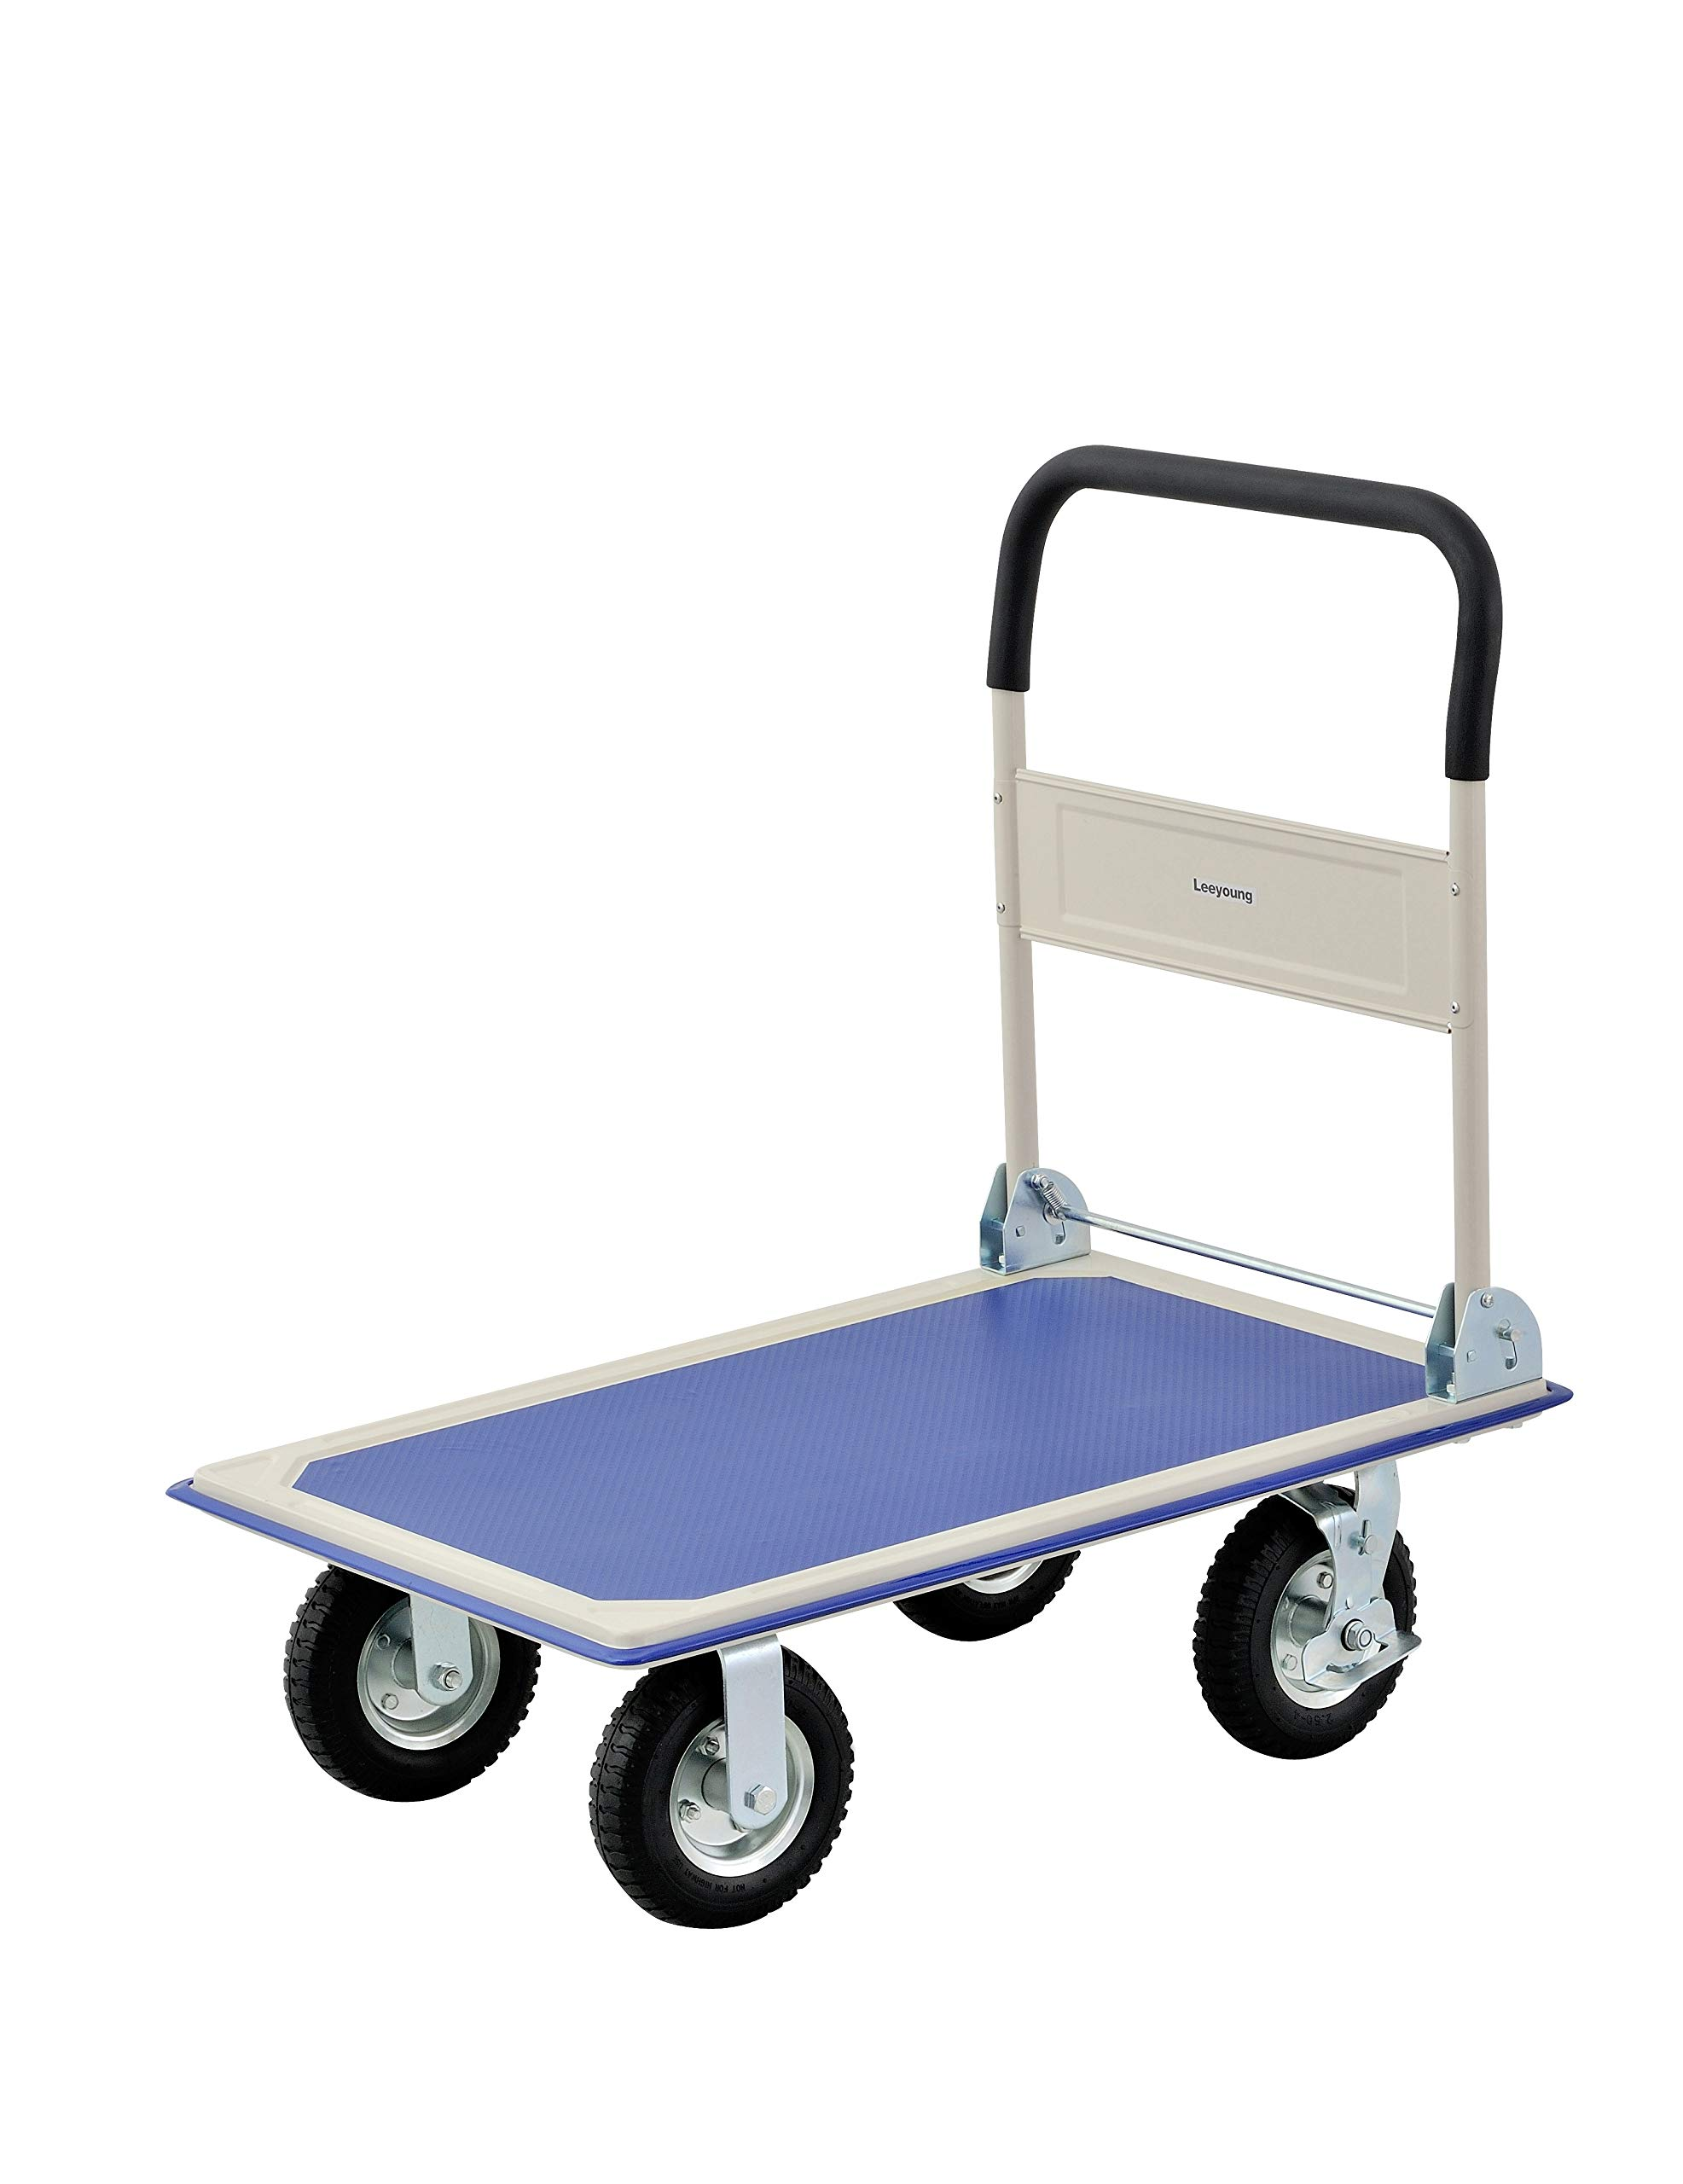 Flatbed Cart with Flatbed Cart with Flatbed Cart with Non-Slip Swivel Casters,Pneumatic tire,with Brake (660Lbs Load-Bearing Capacity, Blue)